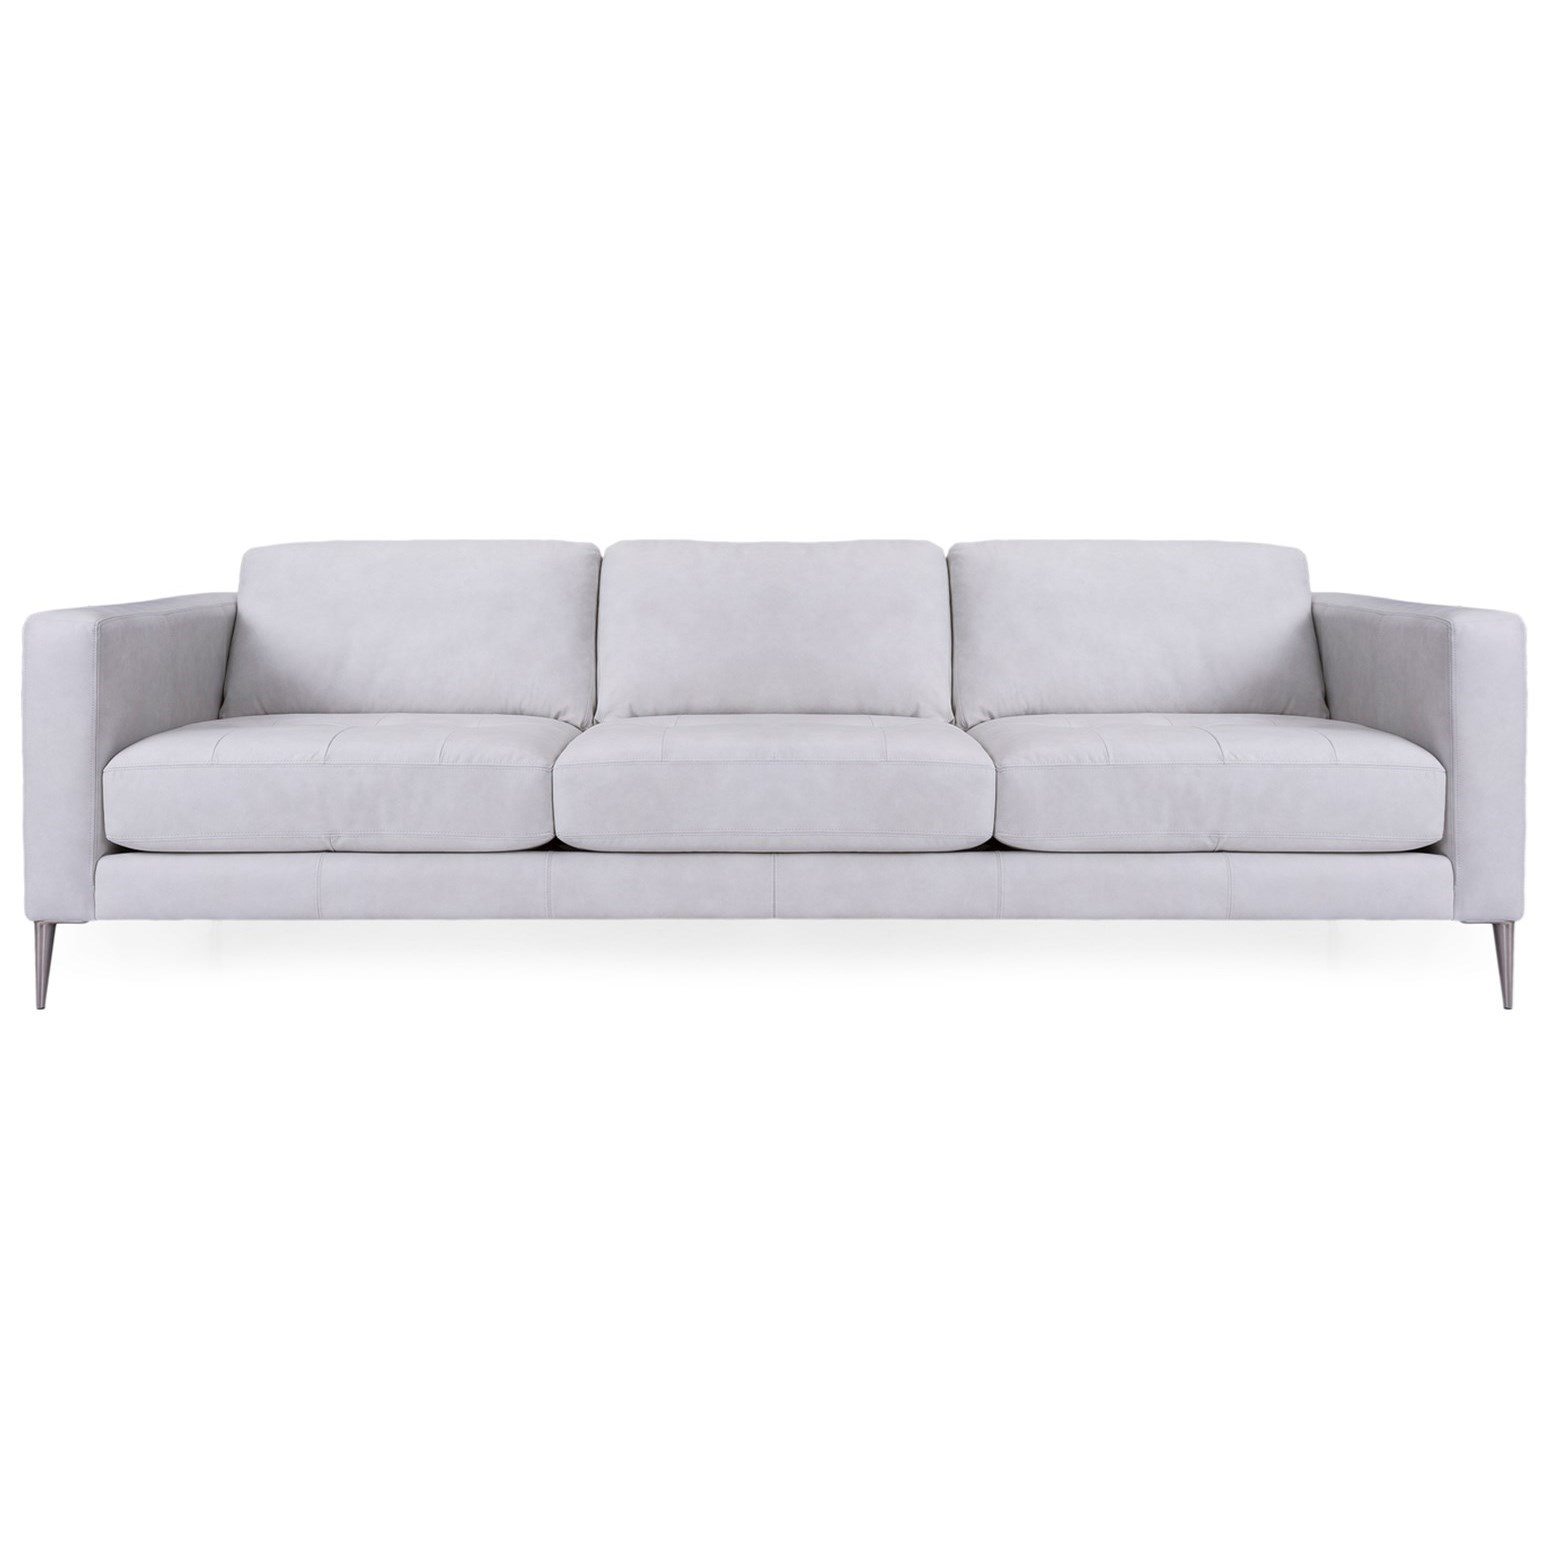 3795 Sofa by Decor-Rest at Reid's Furniture